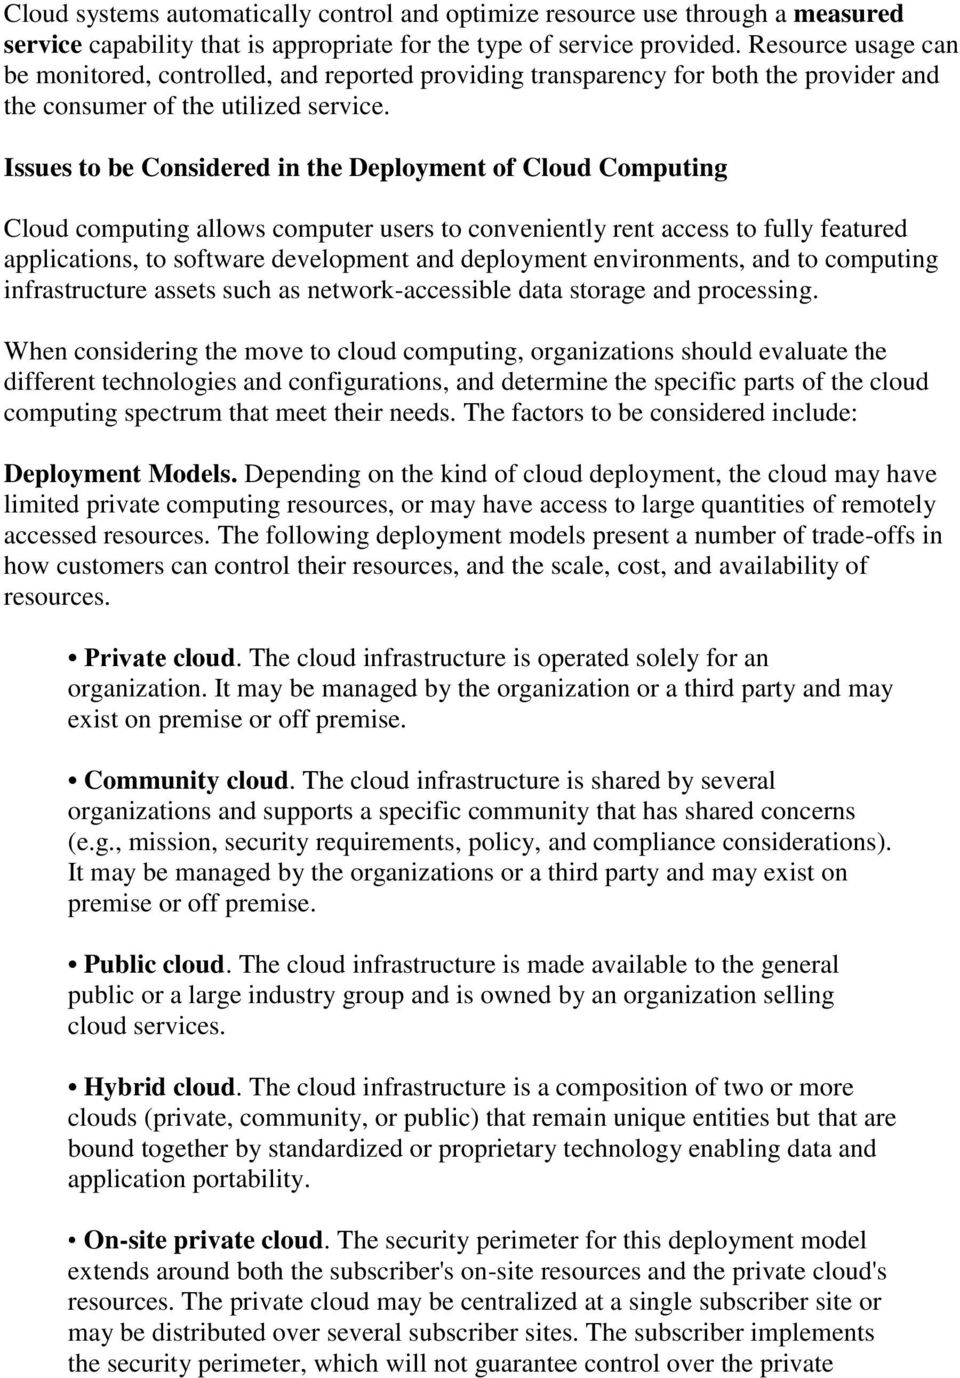 Issues to be Considered in the Deployment of Cloud Computing Cloud computing allows computer users to conveniently rent access to fully featured applications, to software development and deployment